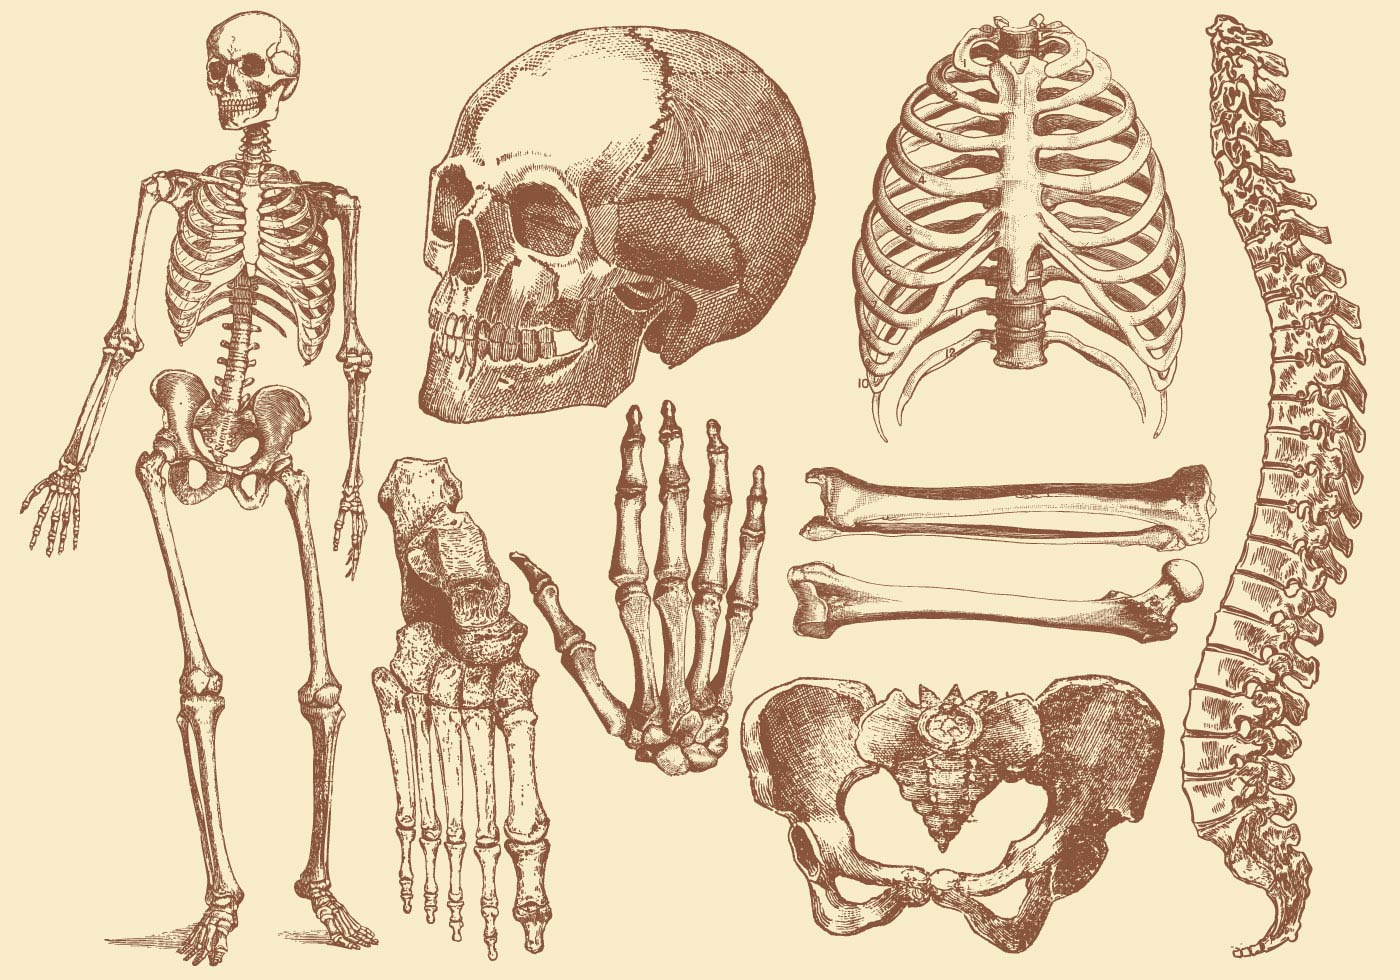 Old Style Drawing Human Bones - Download Free Vector Art, Stock ...